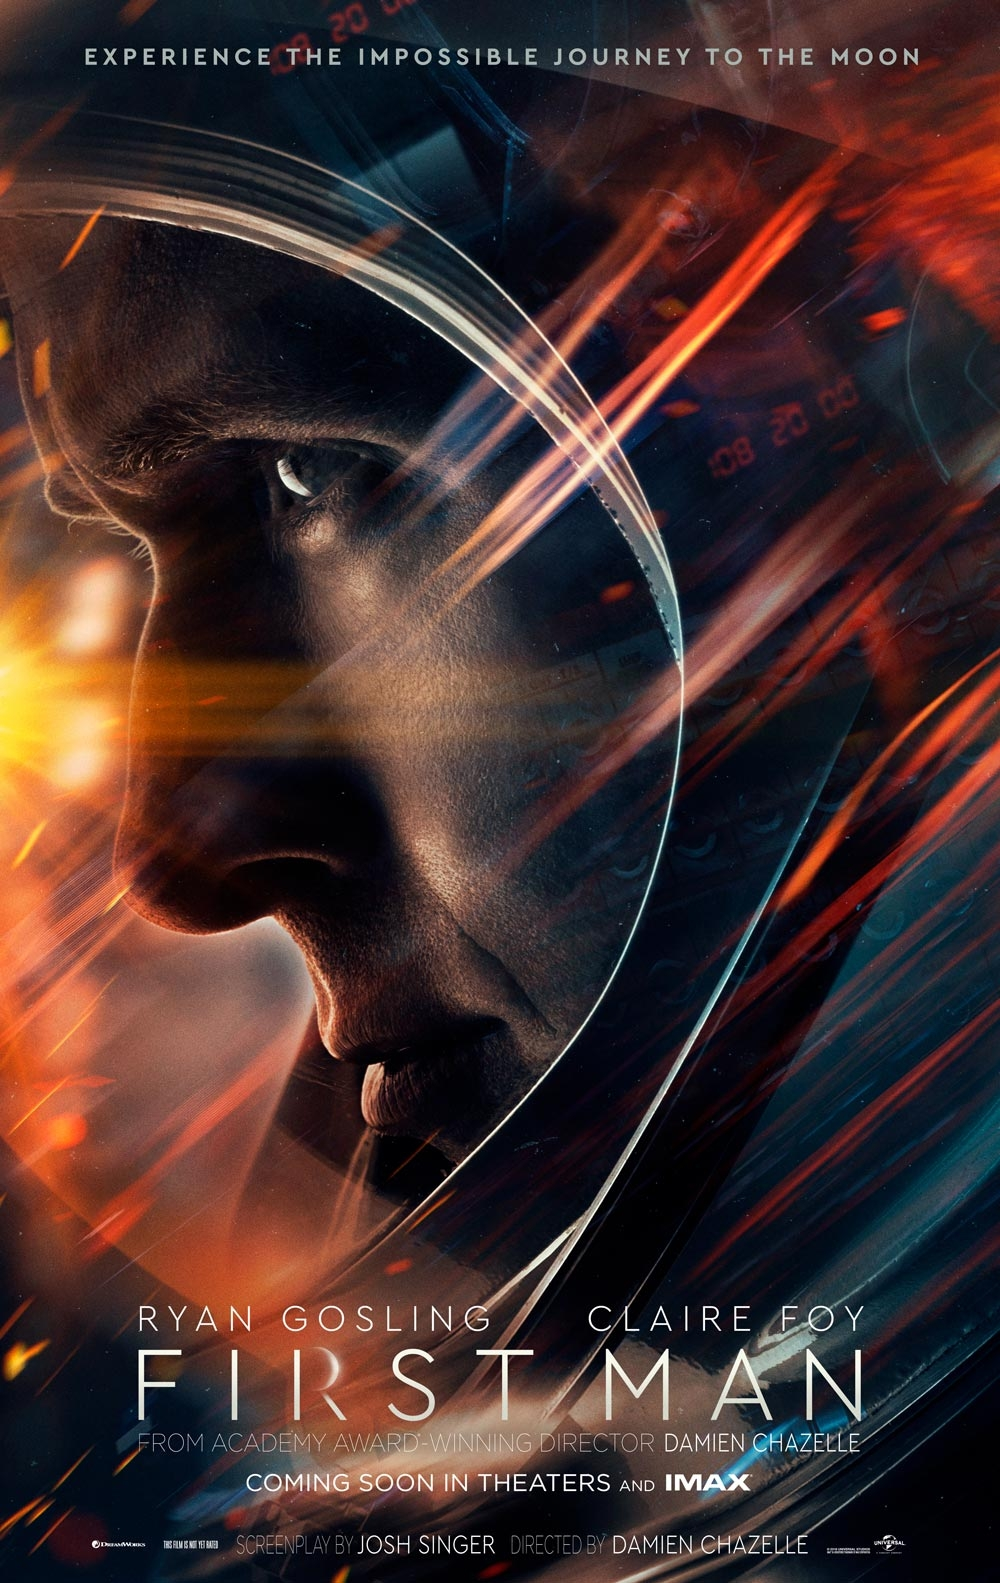 First Man - Directed by Damien ChazelleWritten by Josh Singer, based on James R. Hansen's biography of Armstrong.With Ryan Gosling, Claire Foy, Jason Clarke…